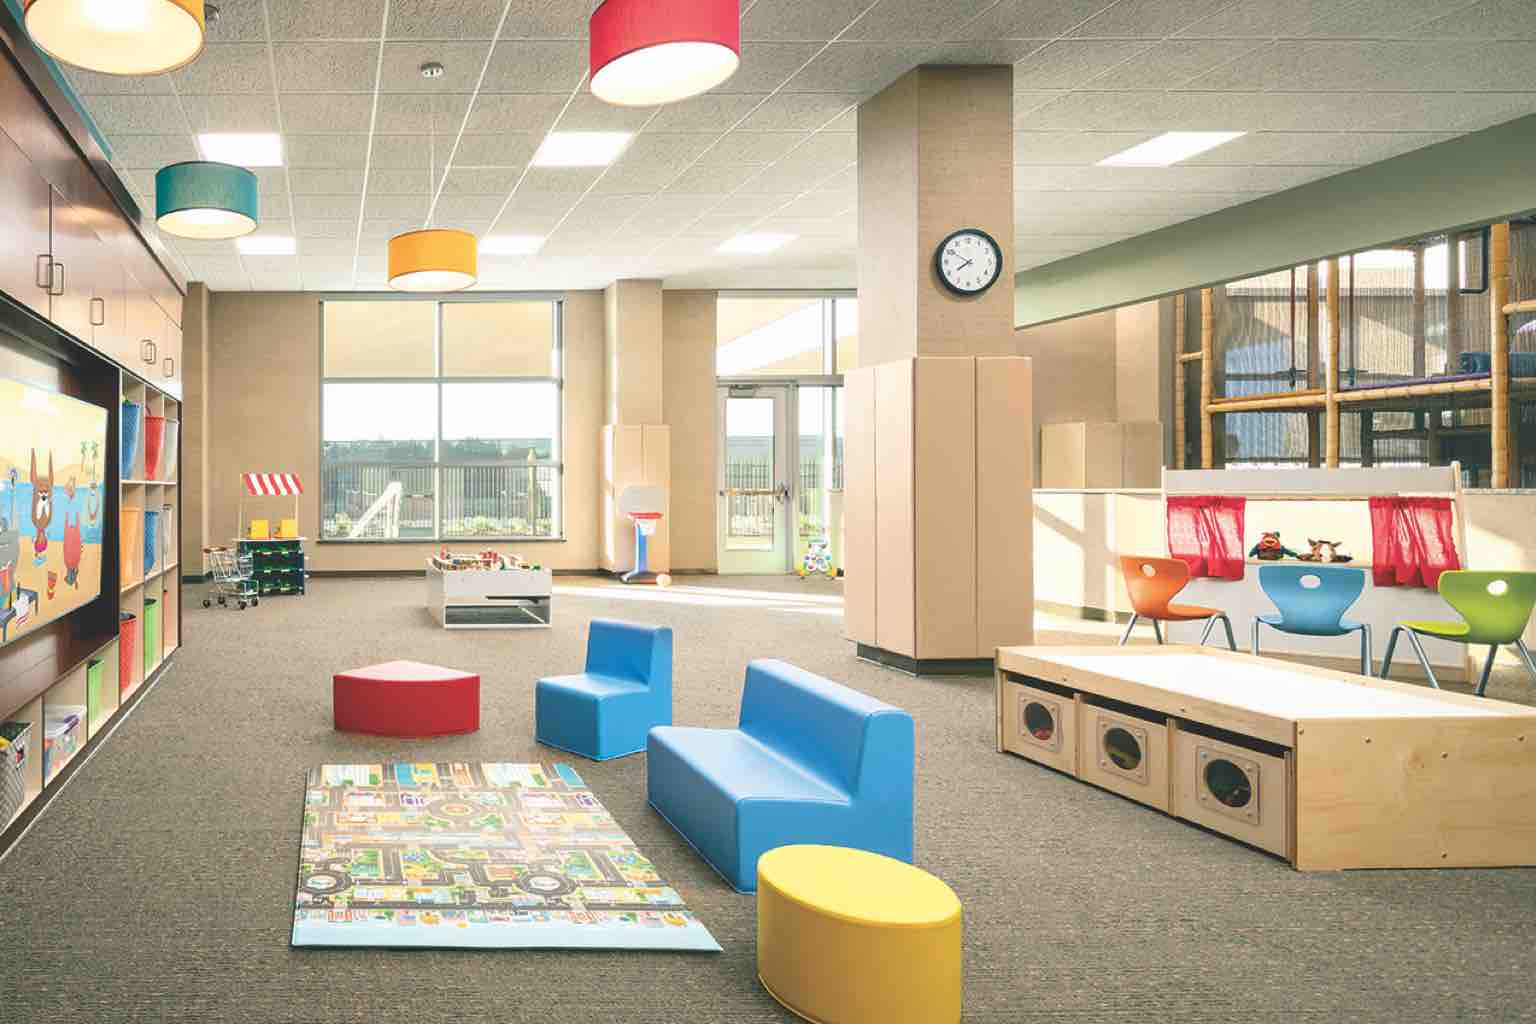 A colorful child center featuring bright cubbies, toys and a video-watching area filled with child-sized furniture